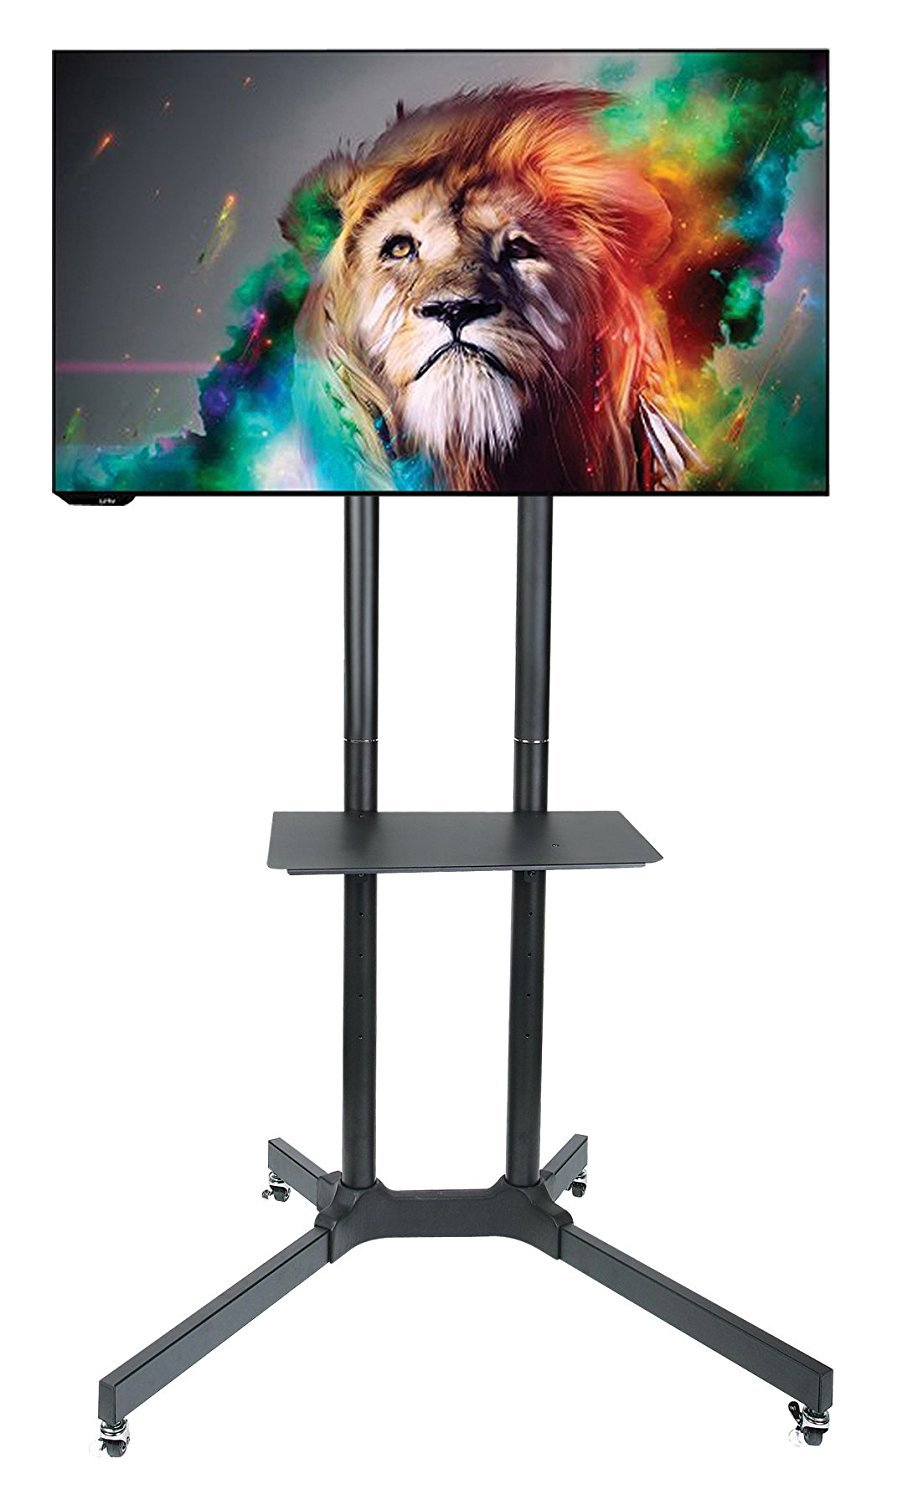 Halter Rolling TV Stand Trolley Cart and Mount for 30-65'' Vesa Mount LED/LCD TV & Monitors with Adjustable Shelf - Sturdy and Durable